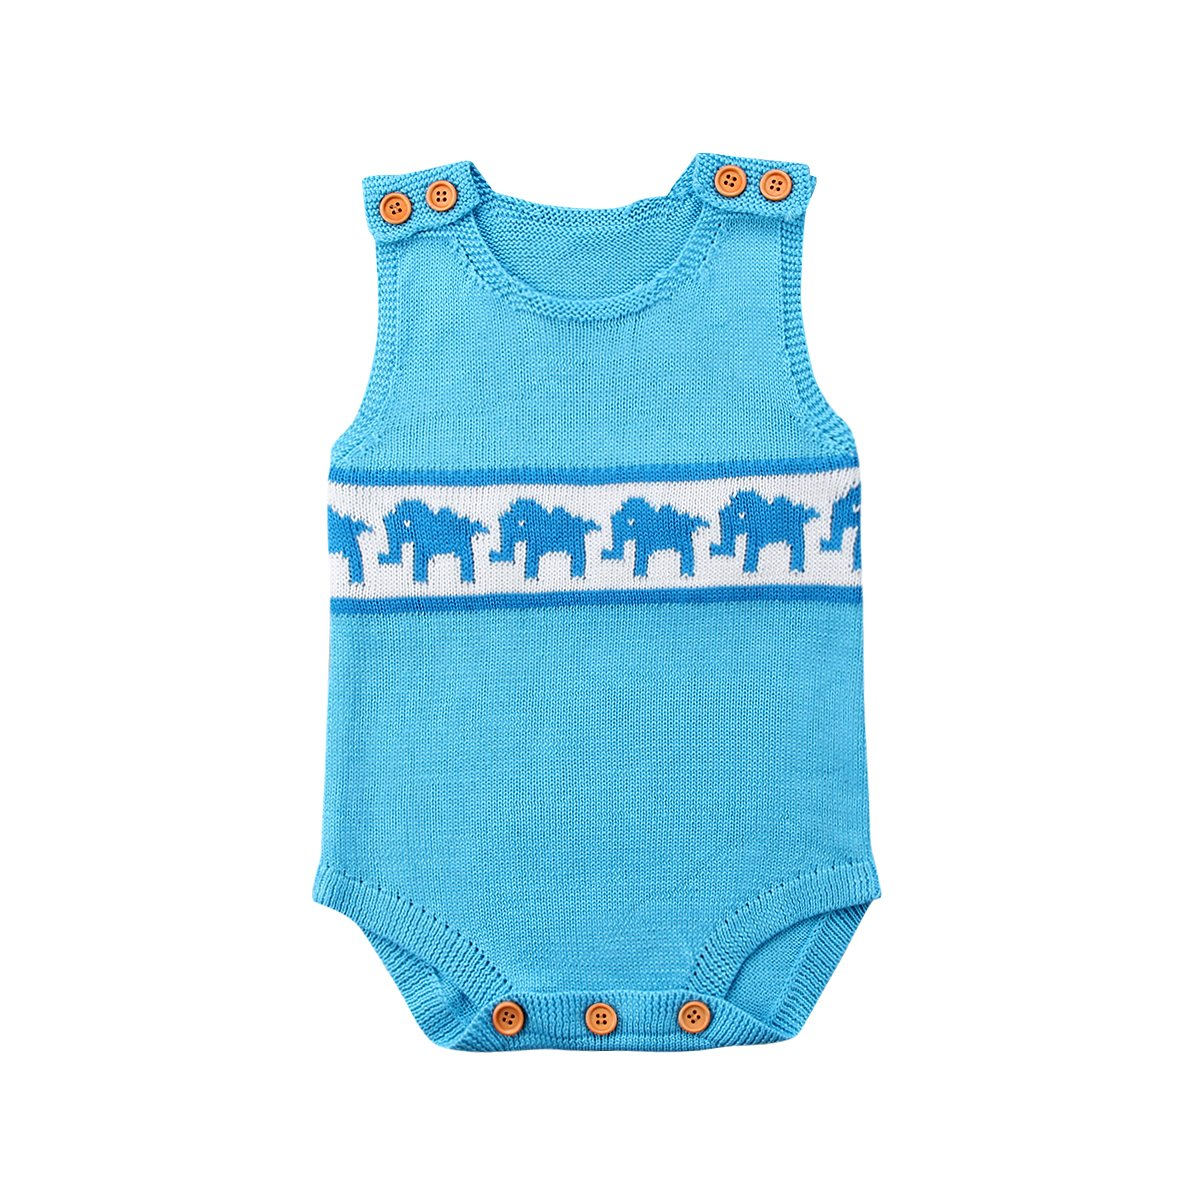 Baby Girls Knitted Elephant Sleeveless Jumpsuit Clothes - bump, baby and beyond